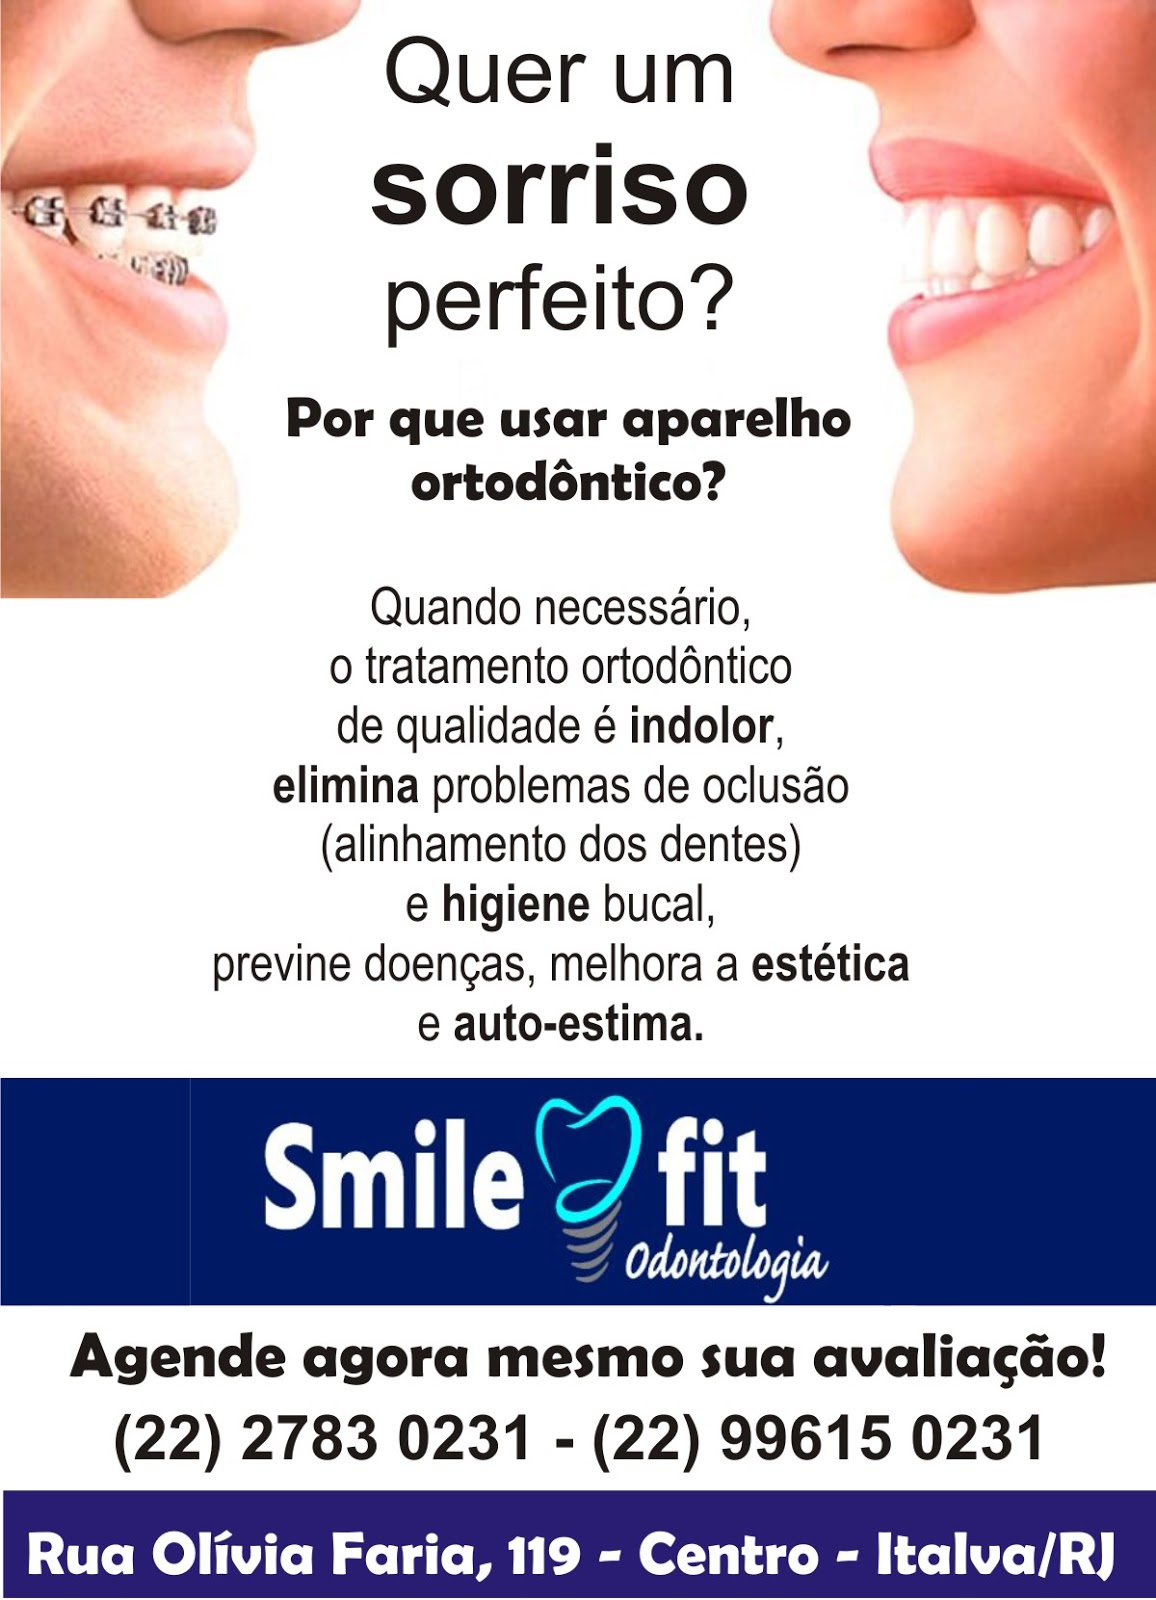 Smile Fit